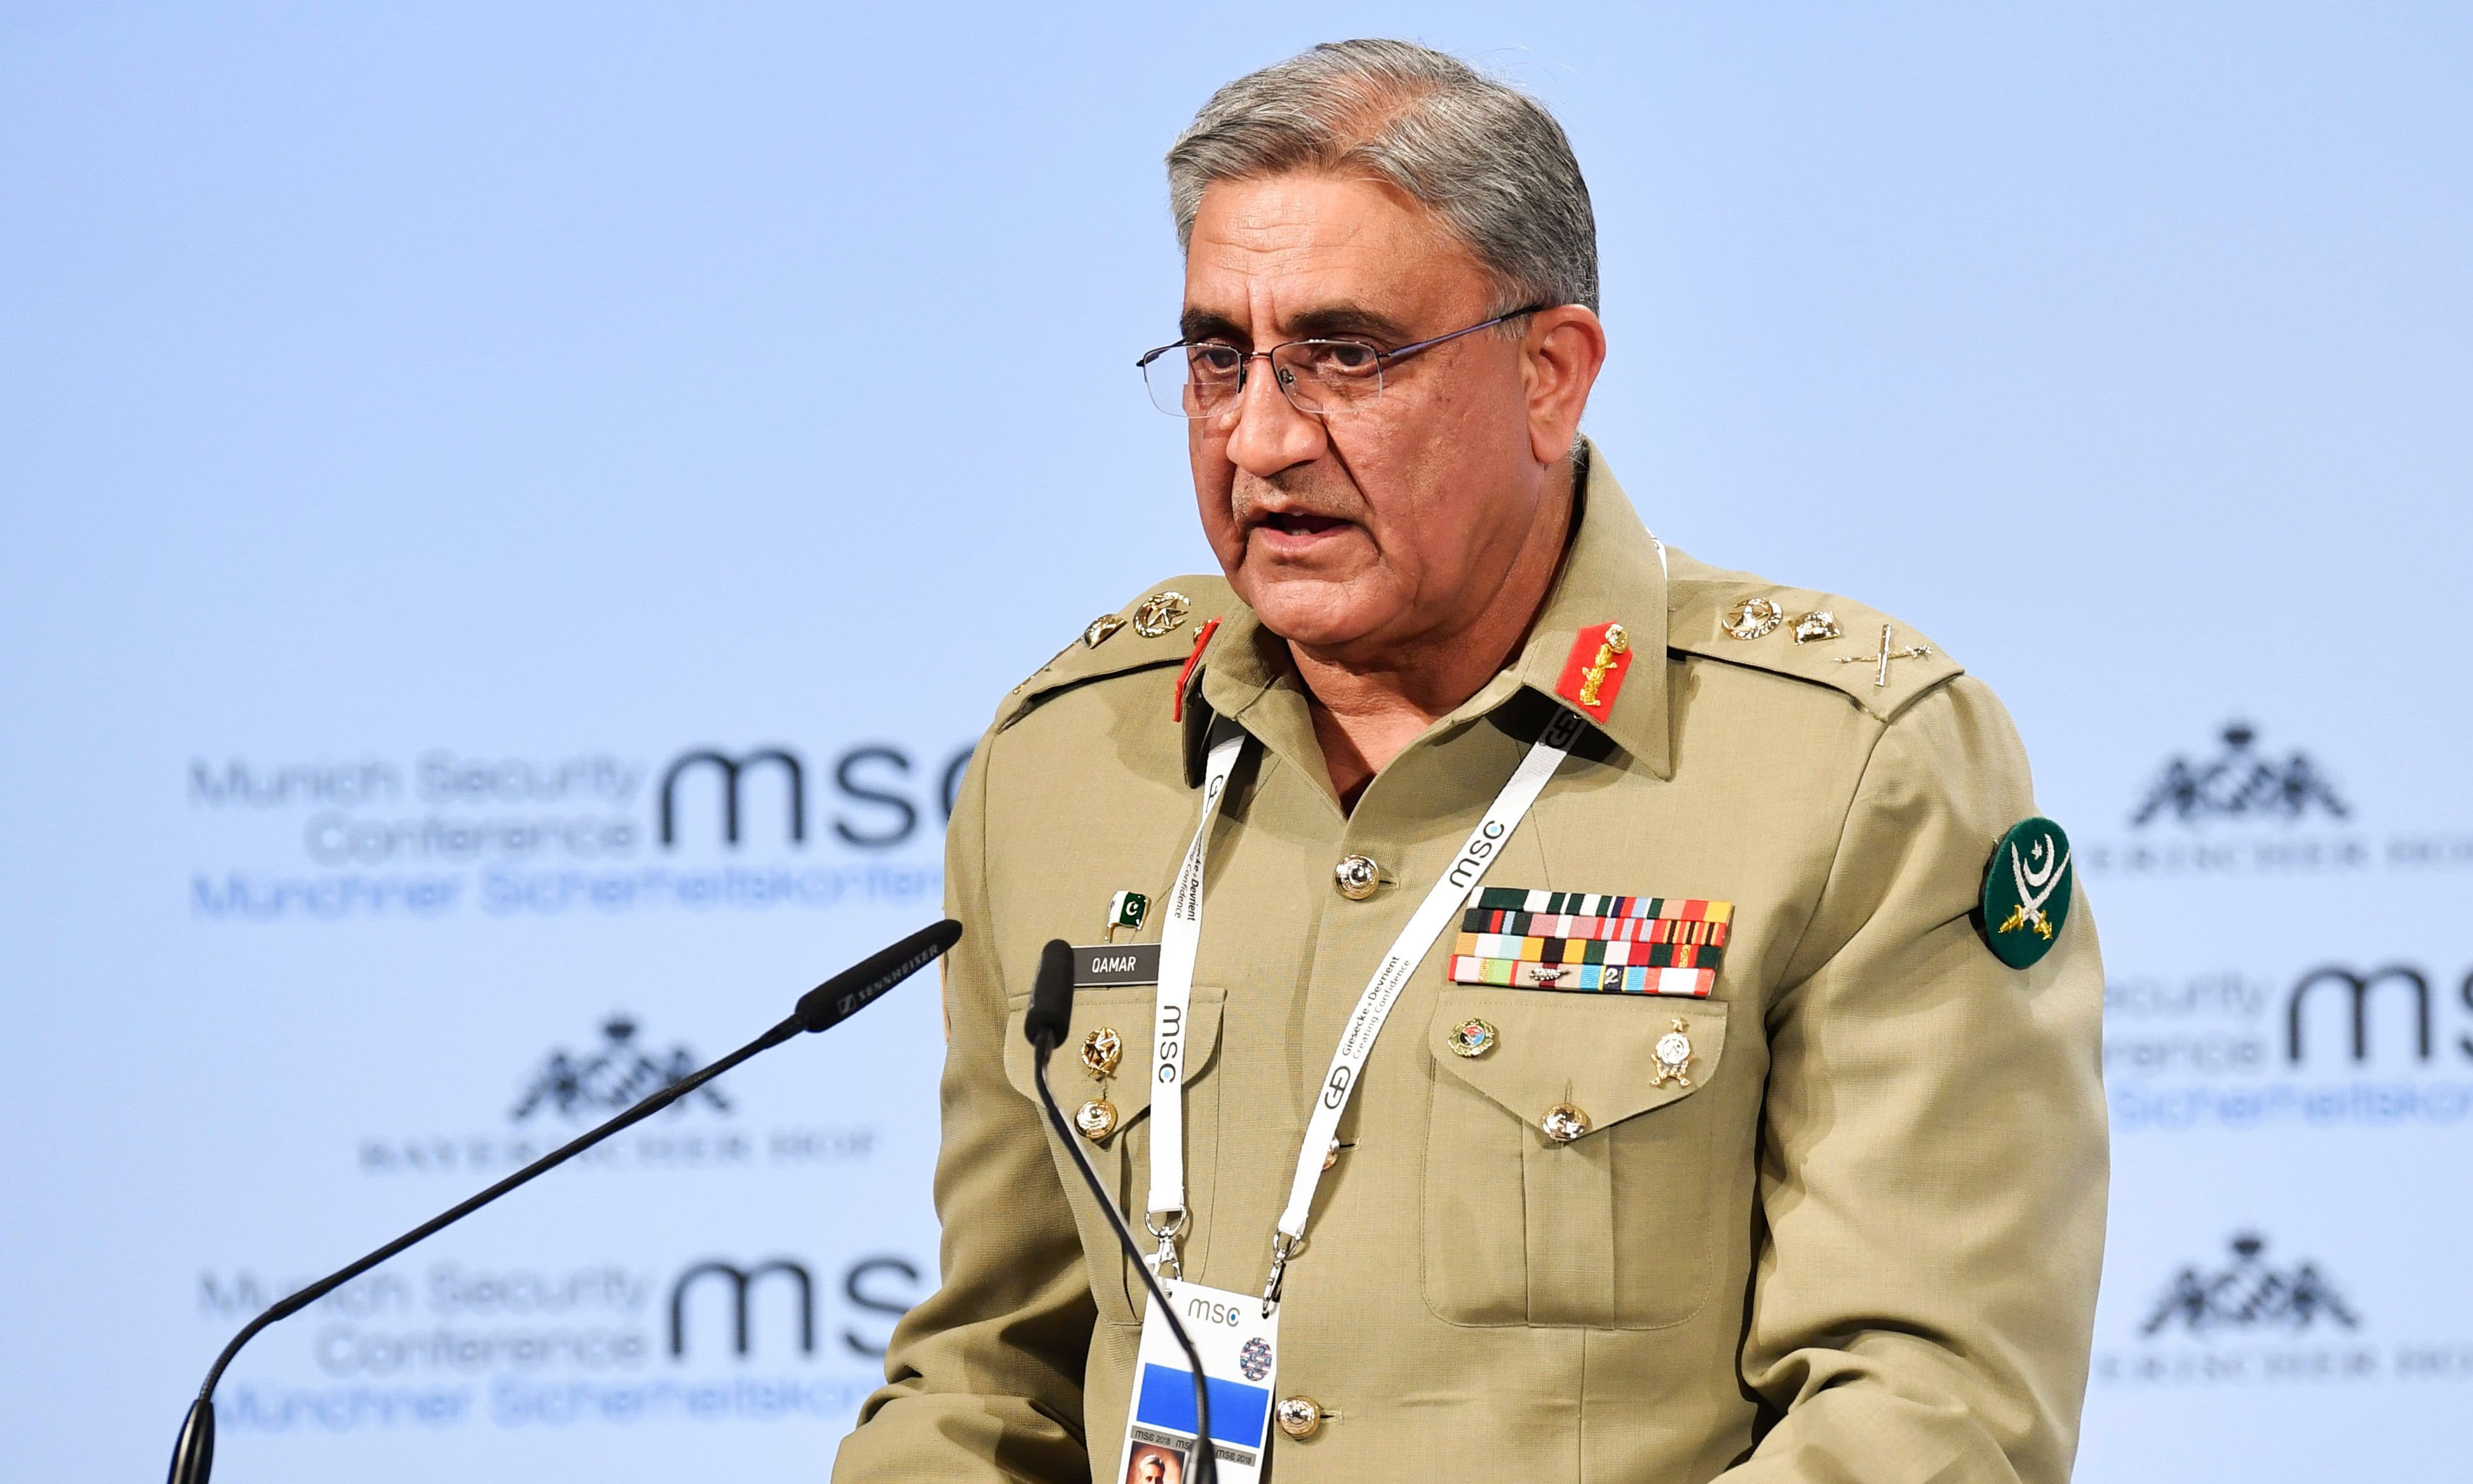 Chief of Army Staff Qamar Javed Bajwa gives his speech on day two of the 54th Munich Security Conference (MSC) in Munich, southern Germany, on February 17, 2018. —AFP